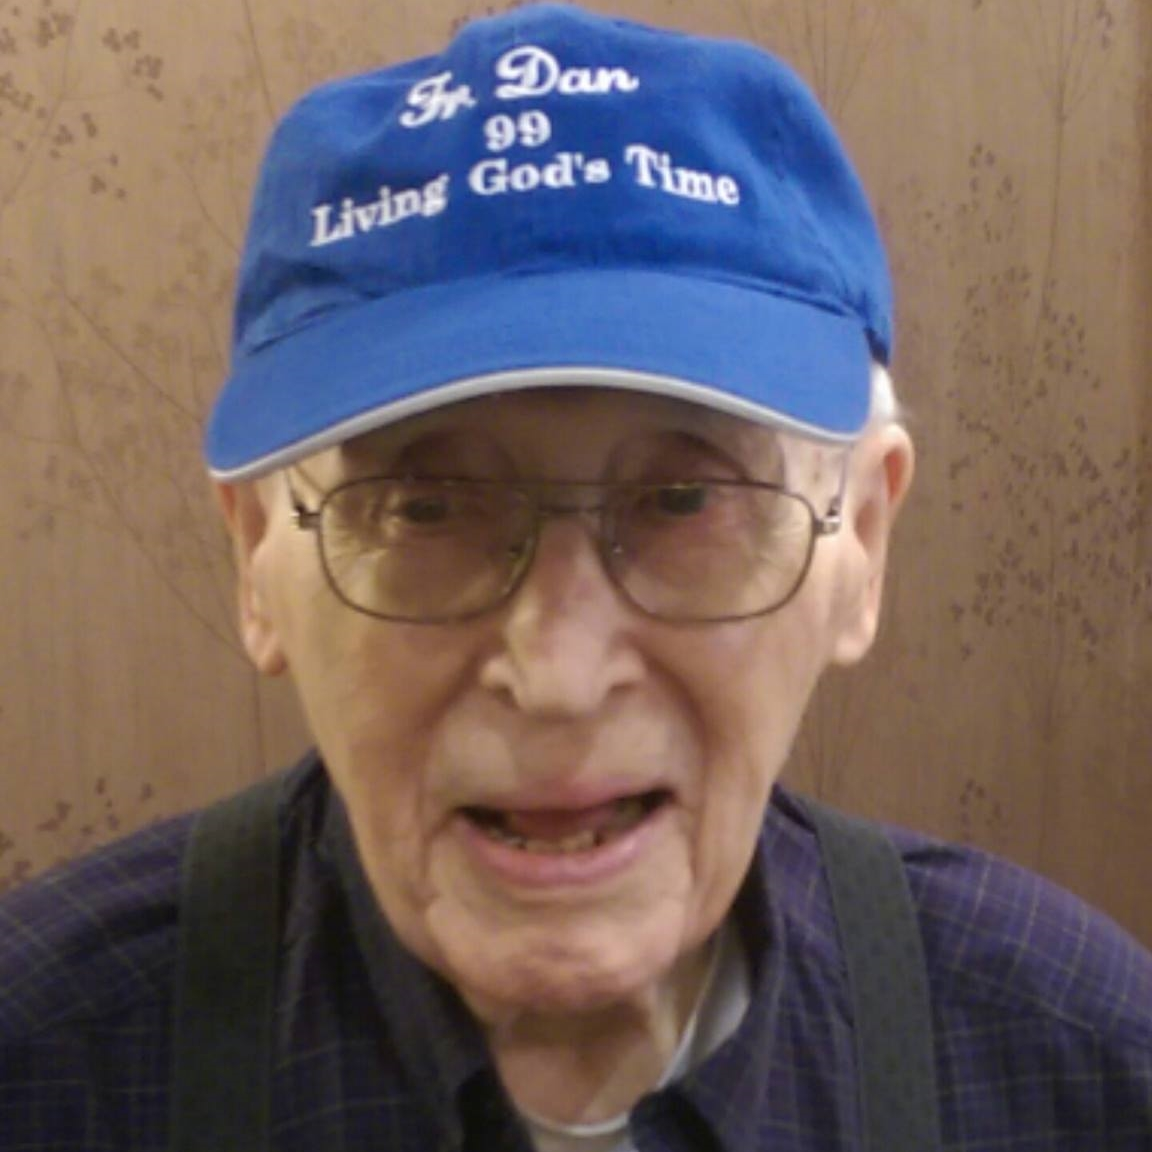 Fr. Dan Hartigan, O.S.A., a retired Augustinian living in Chicago, celebrated his 99th birthday in June 2016.